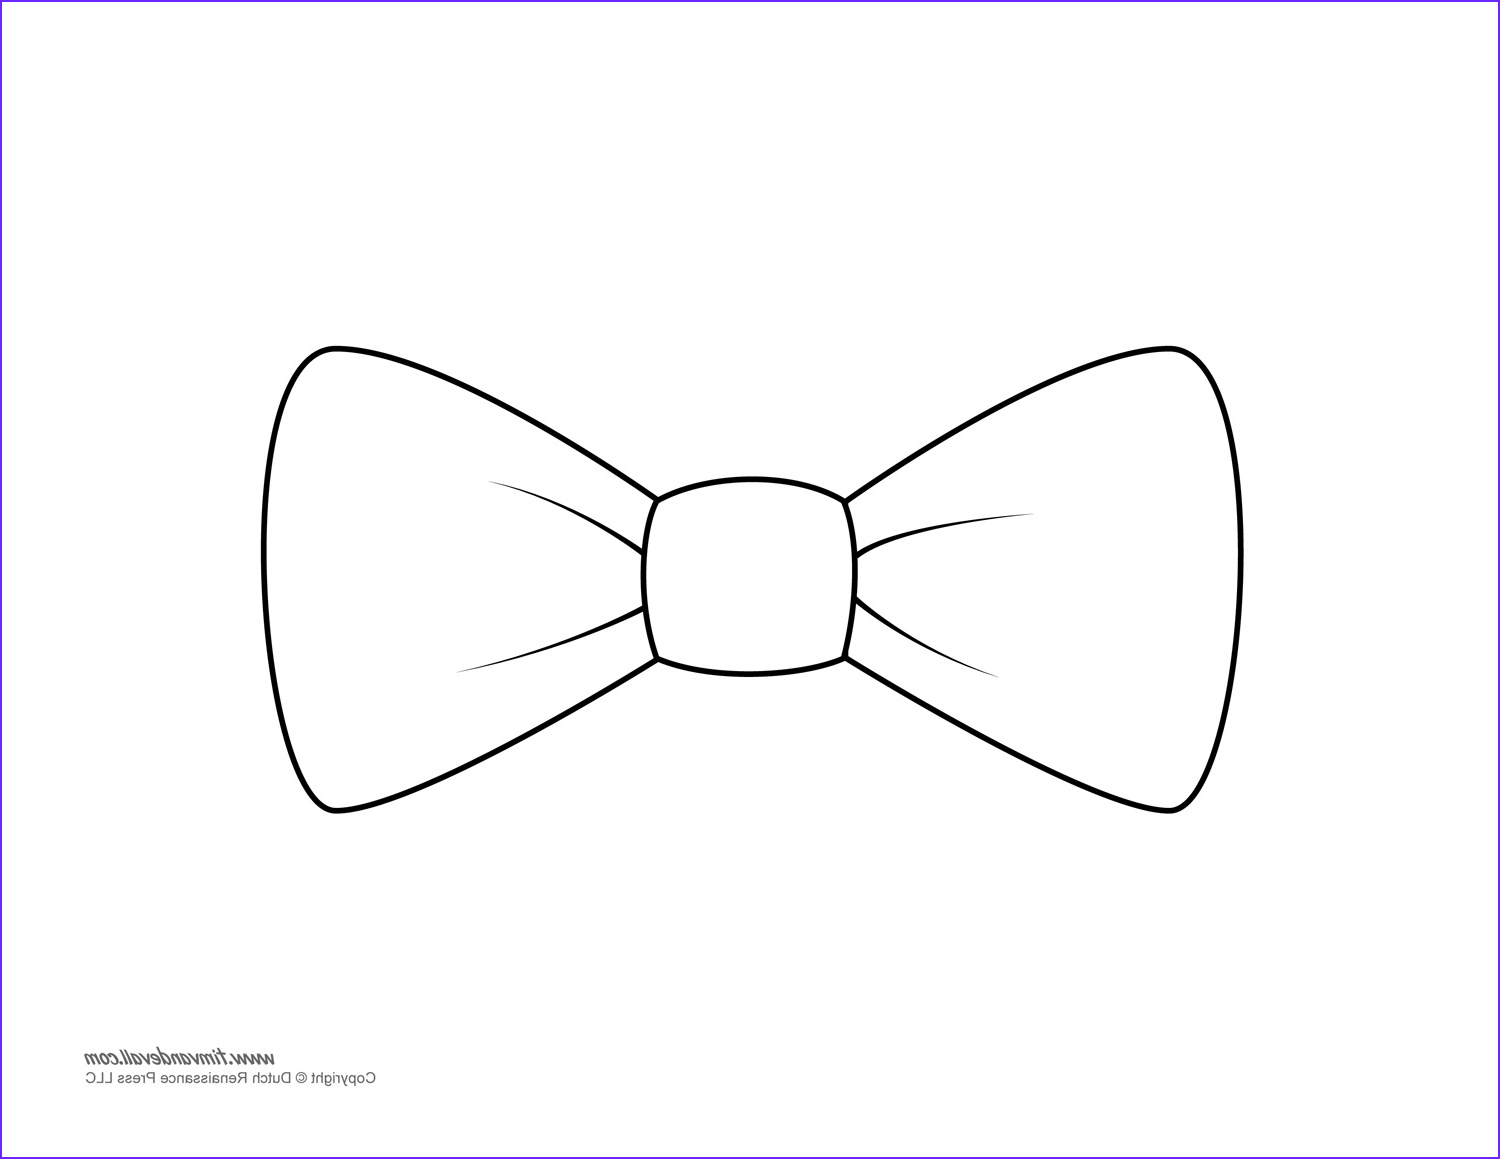 Bow Tie Coloring Page Cool Photography Paper Bow Tie Templates